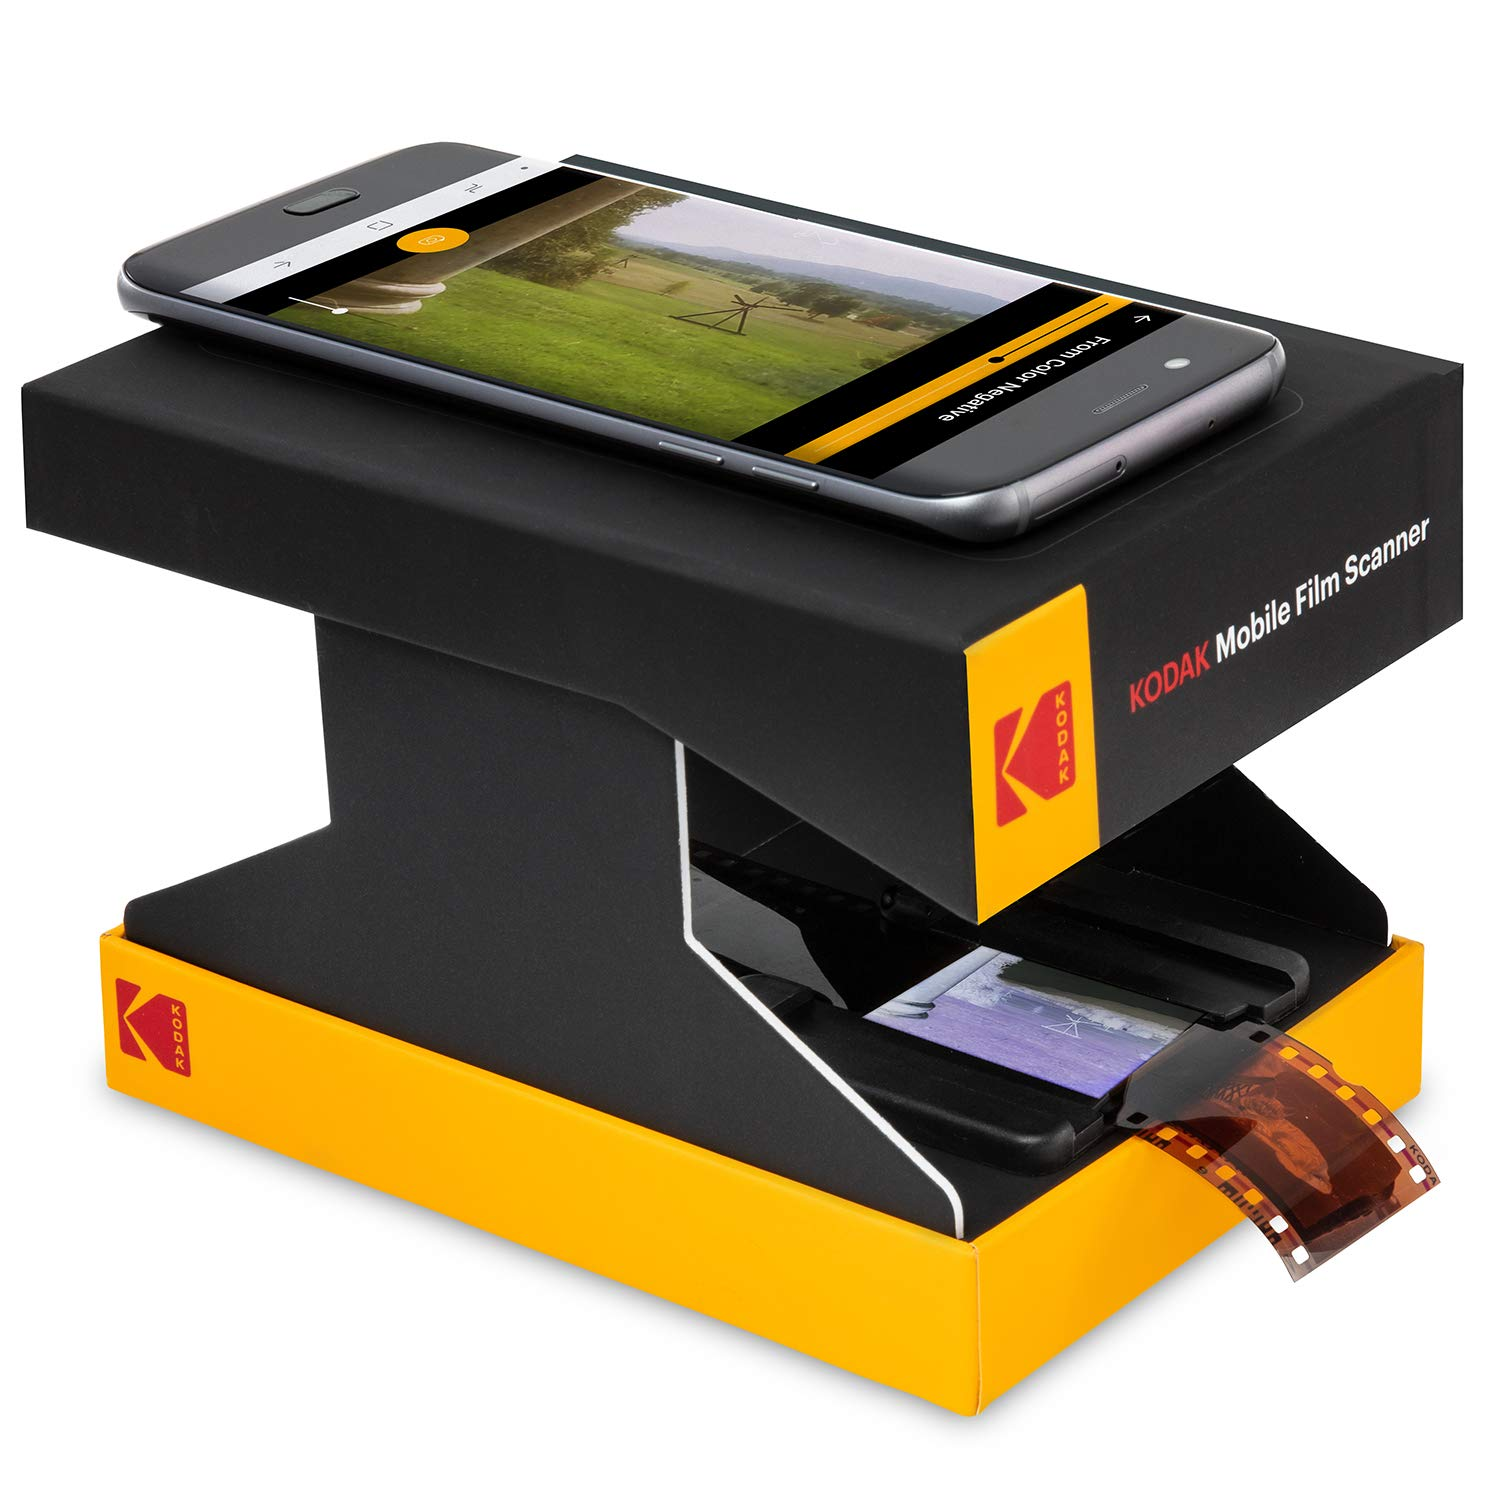 KODAK Mobile Film Scanner - Scan & Save Old 35mm Films & Slides w/Your Smartphone Camera - Portable, Collapsible Scanner w/Built-in LED Light & Free Mobile App for Scanning, Editing & Sharing Photos by KODAK